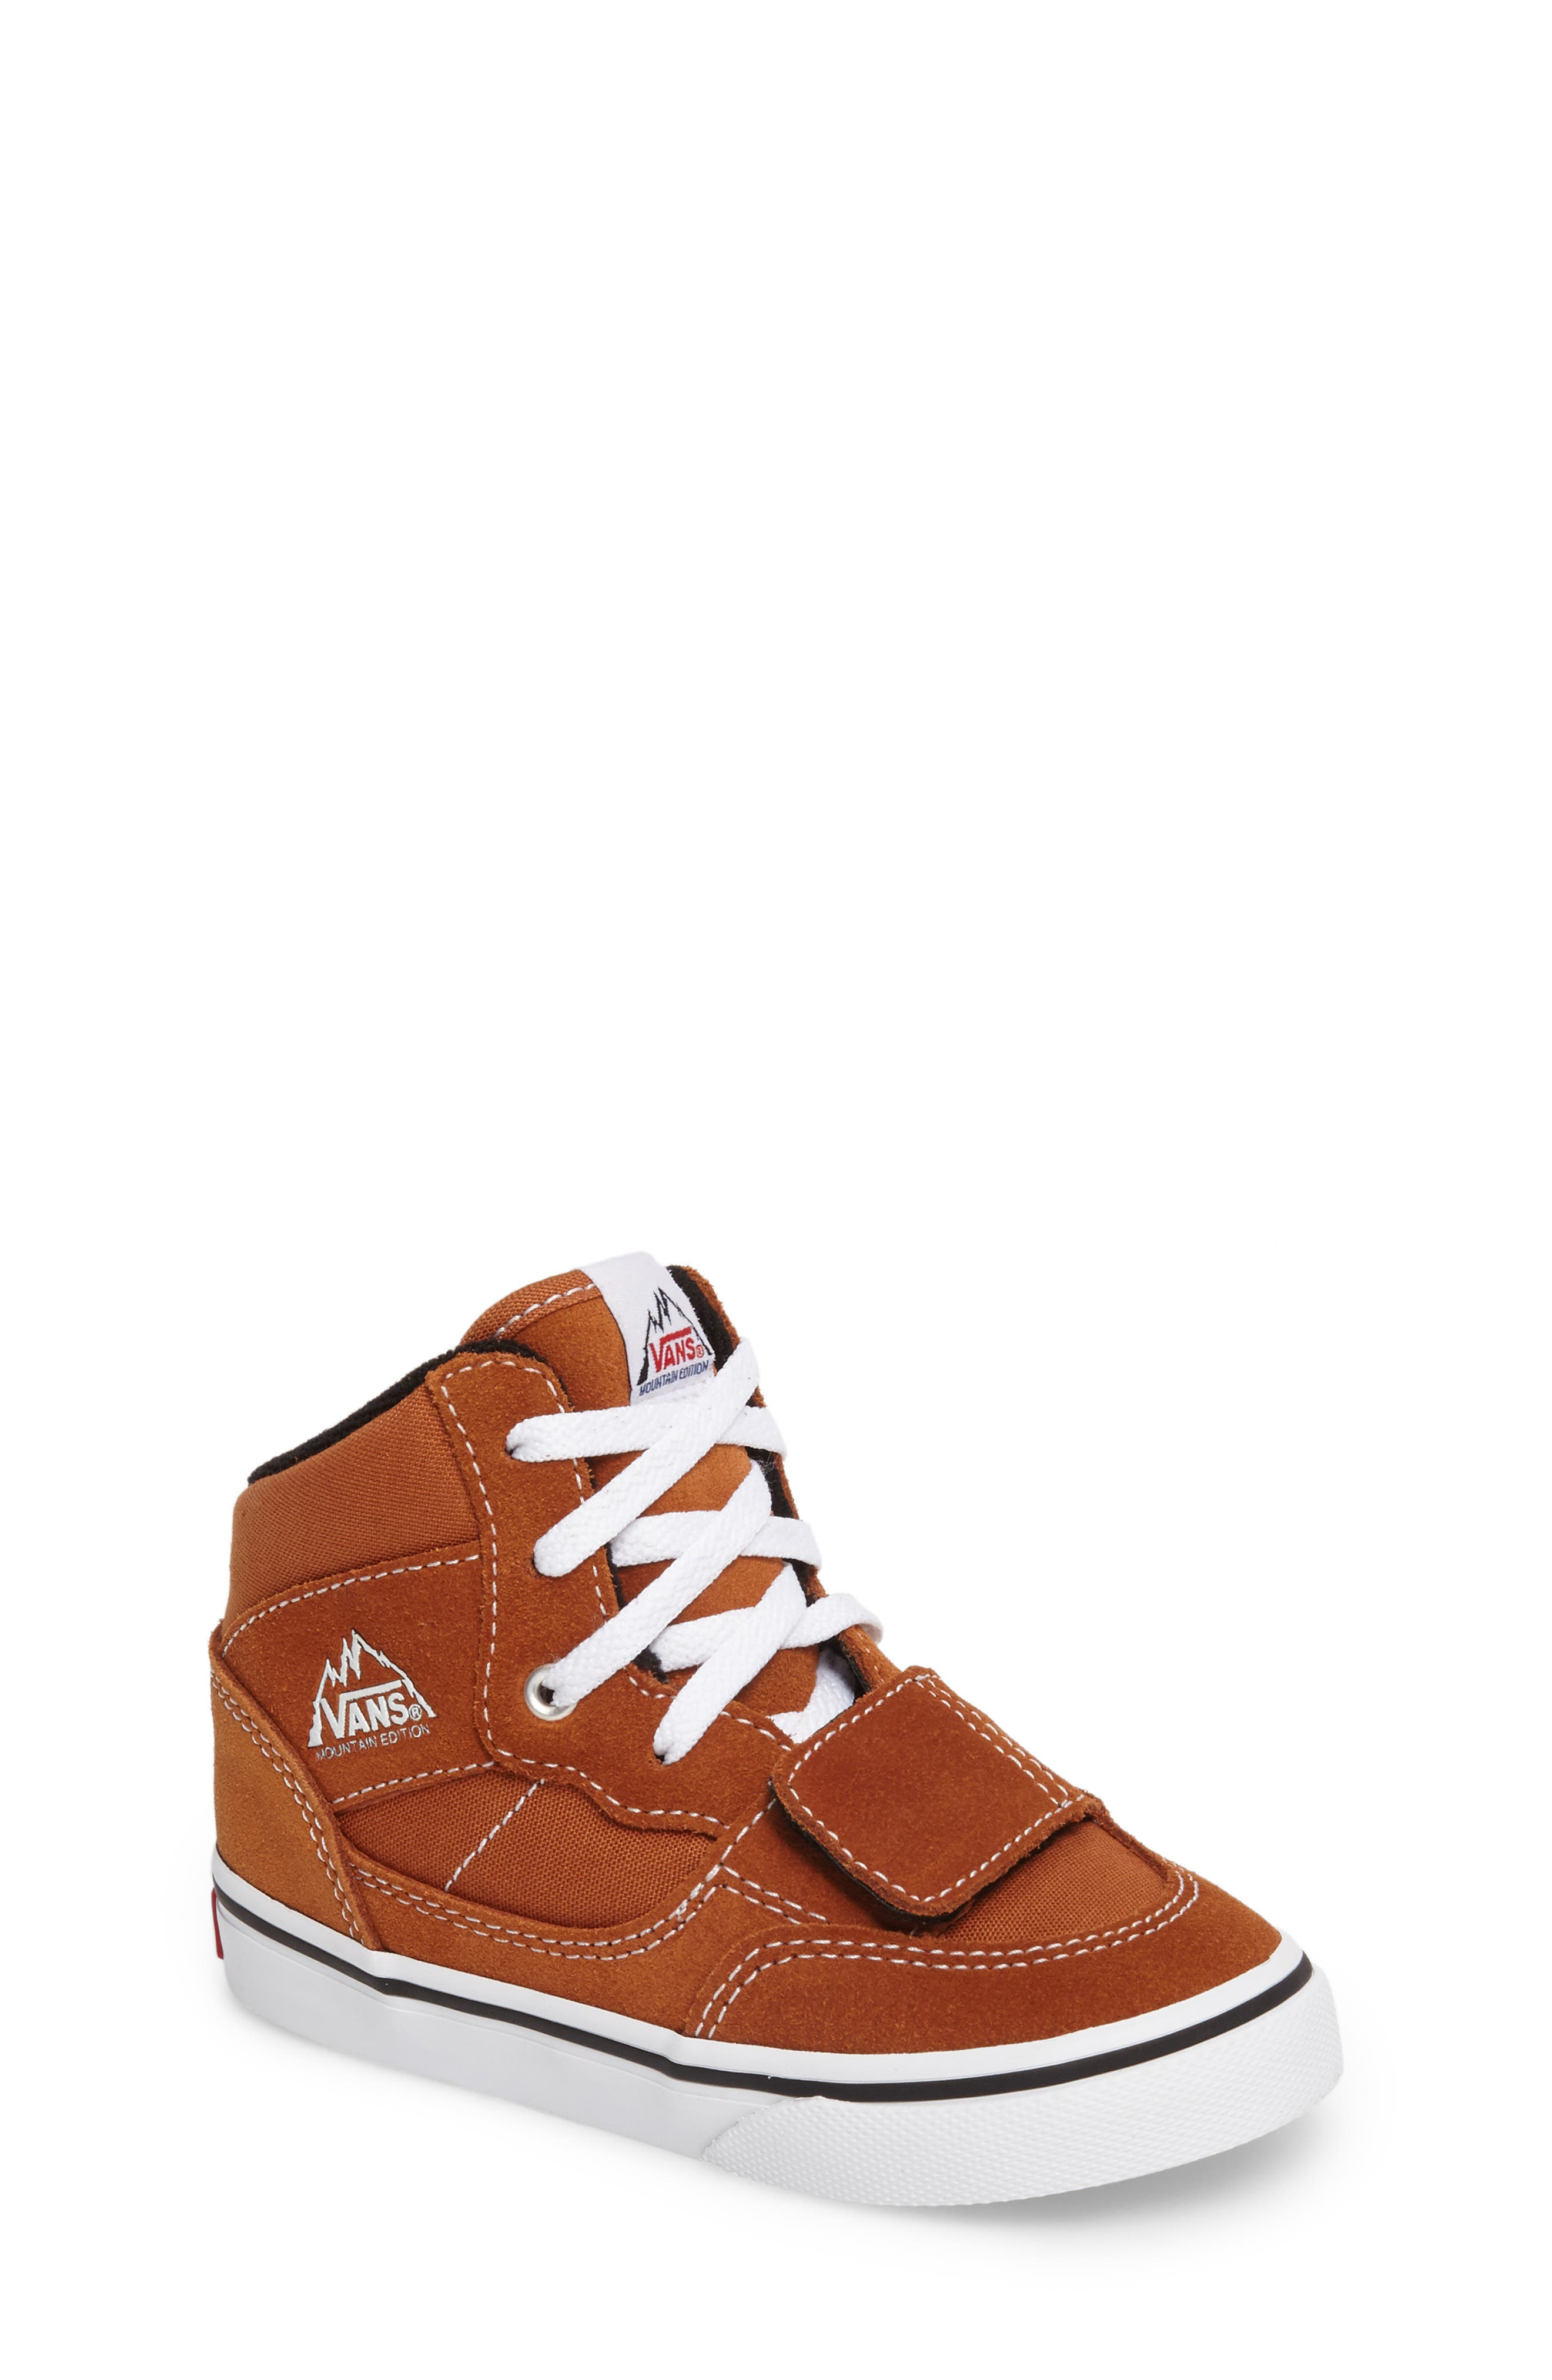 Mountain Edition Mid Top Sneaker,                         Main,                         color, 202